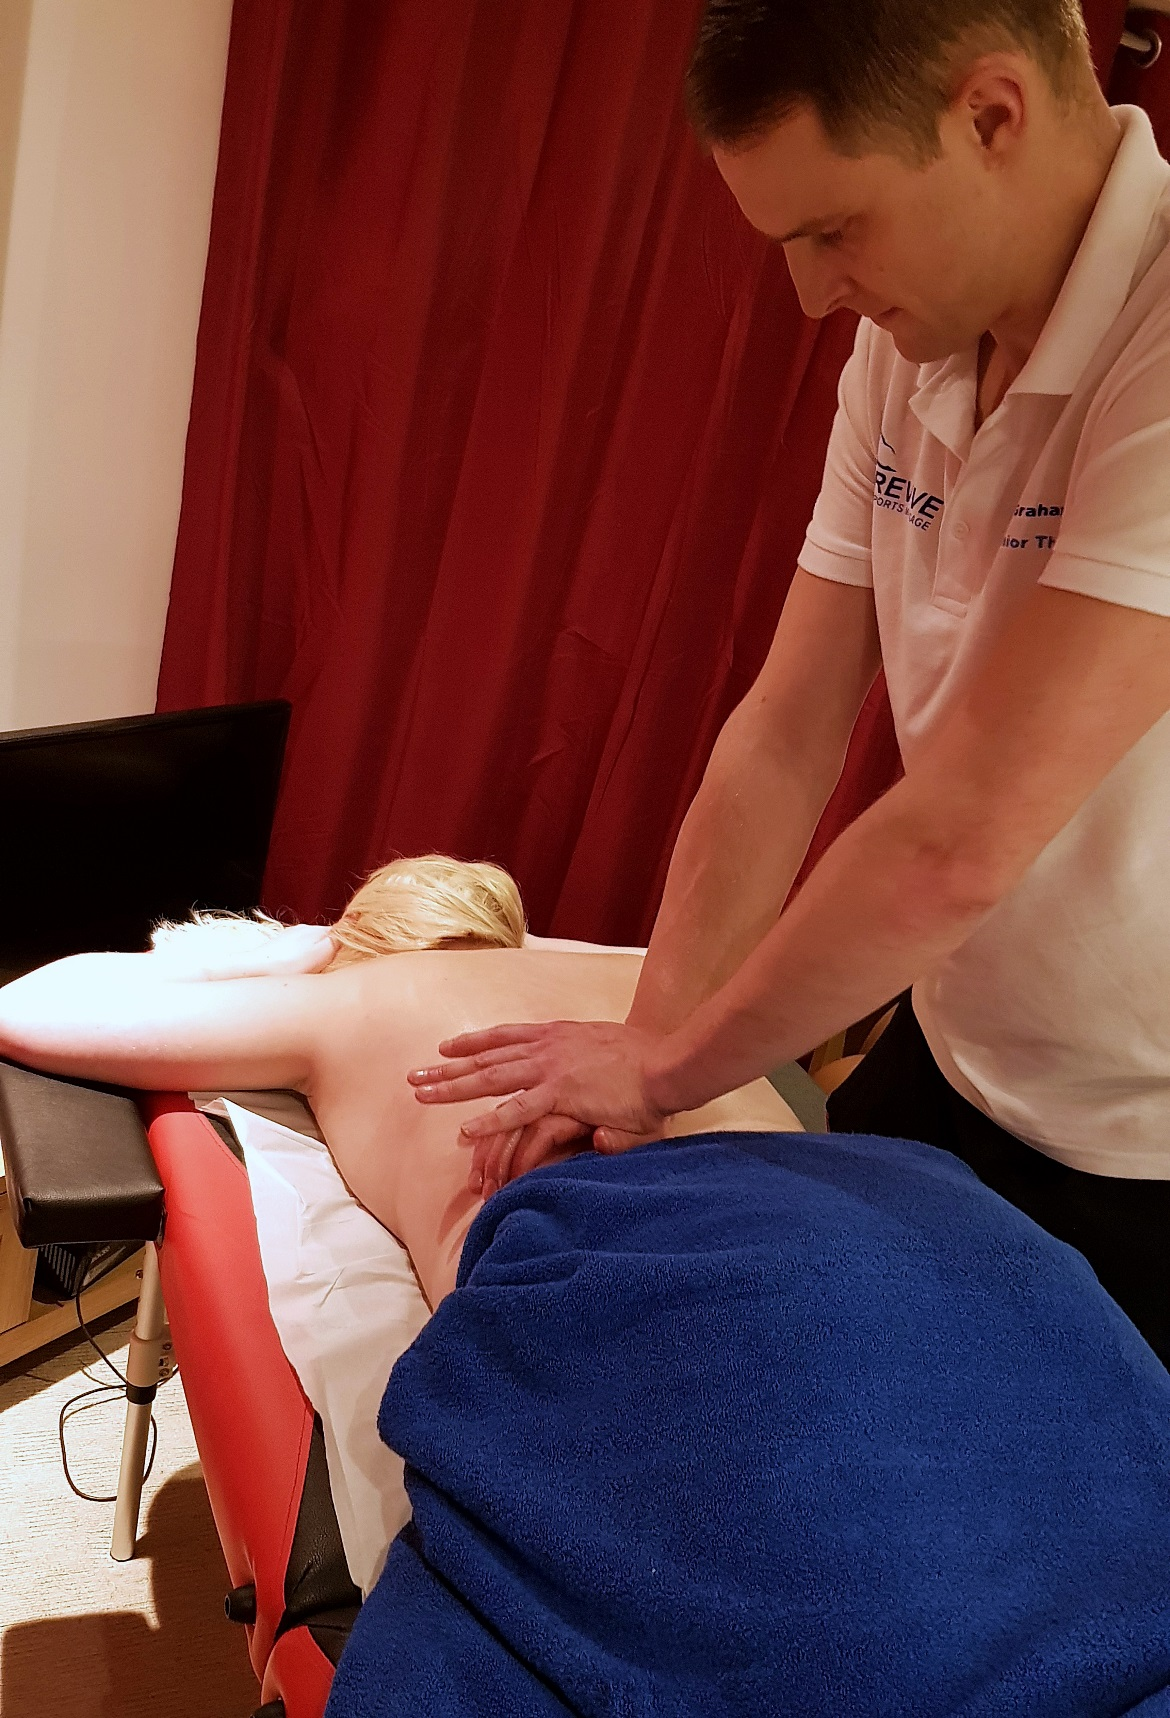 Lower back massage - Deep Tissue Massage with Revive Sports Massage in Leeds by BeckyBecky Blogs